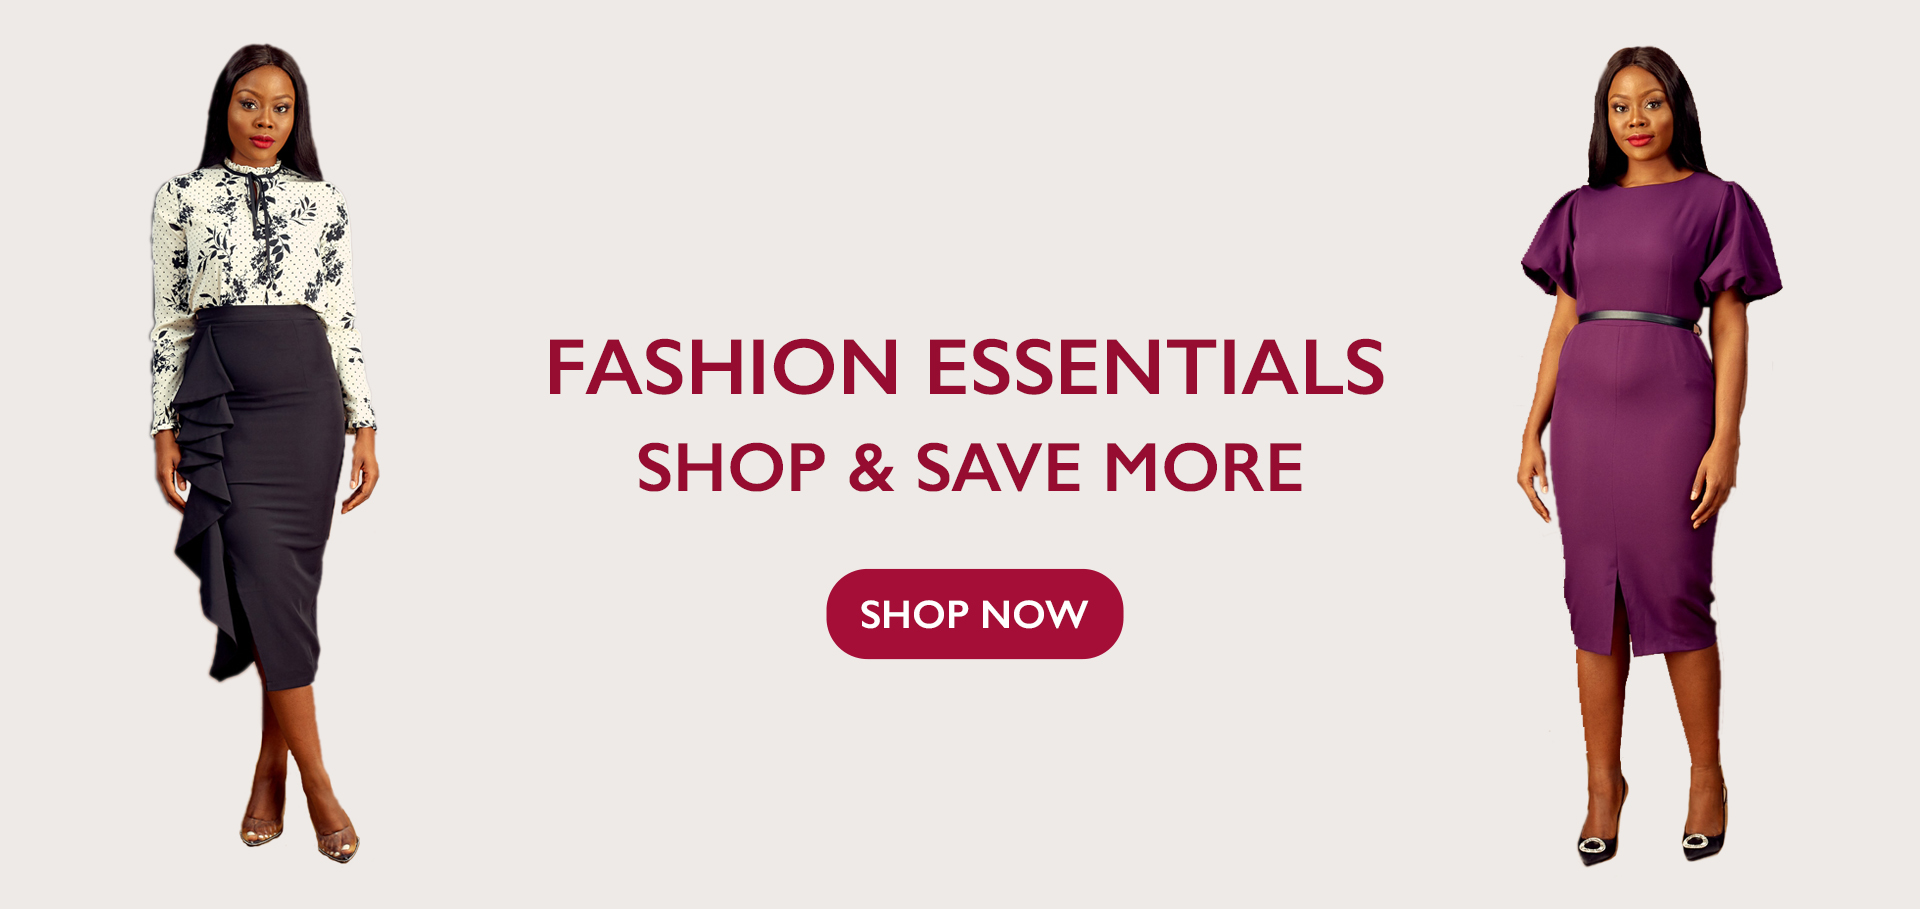 564a23fcad Ladies Fashion and Accessories - Shop Online at Debras Grace ☆